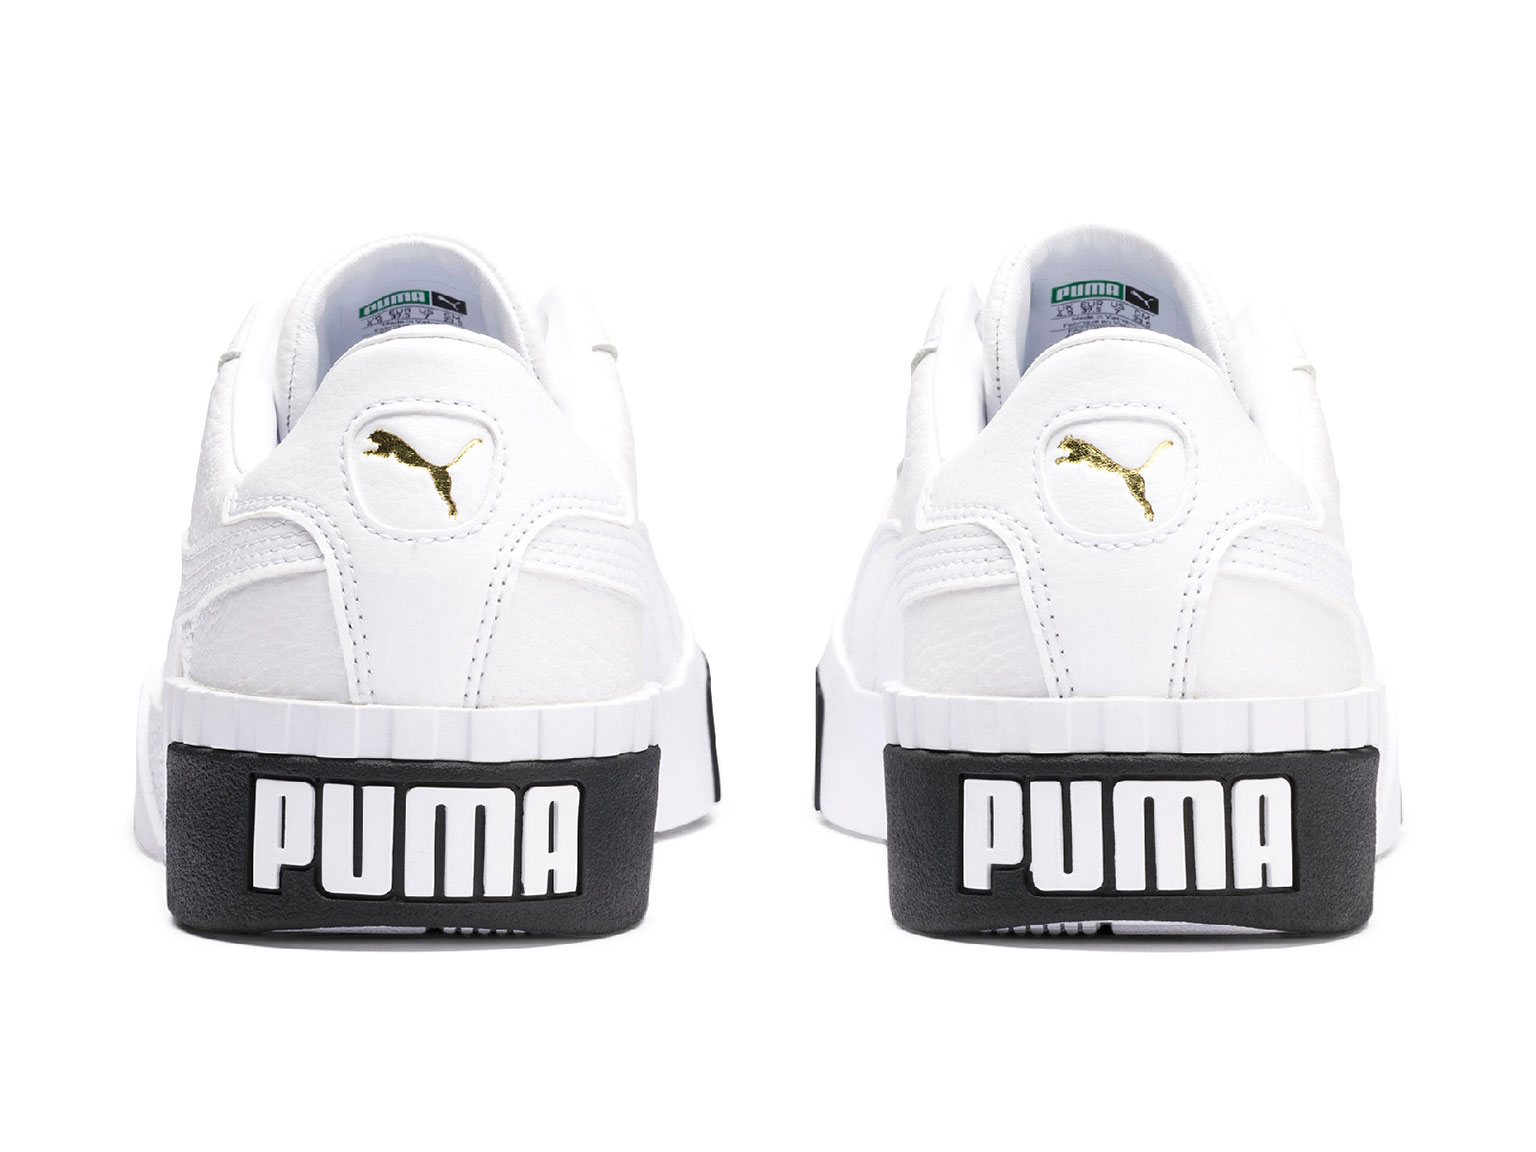 White Cali shoes featuring PUMA on the sole 4514f3c49